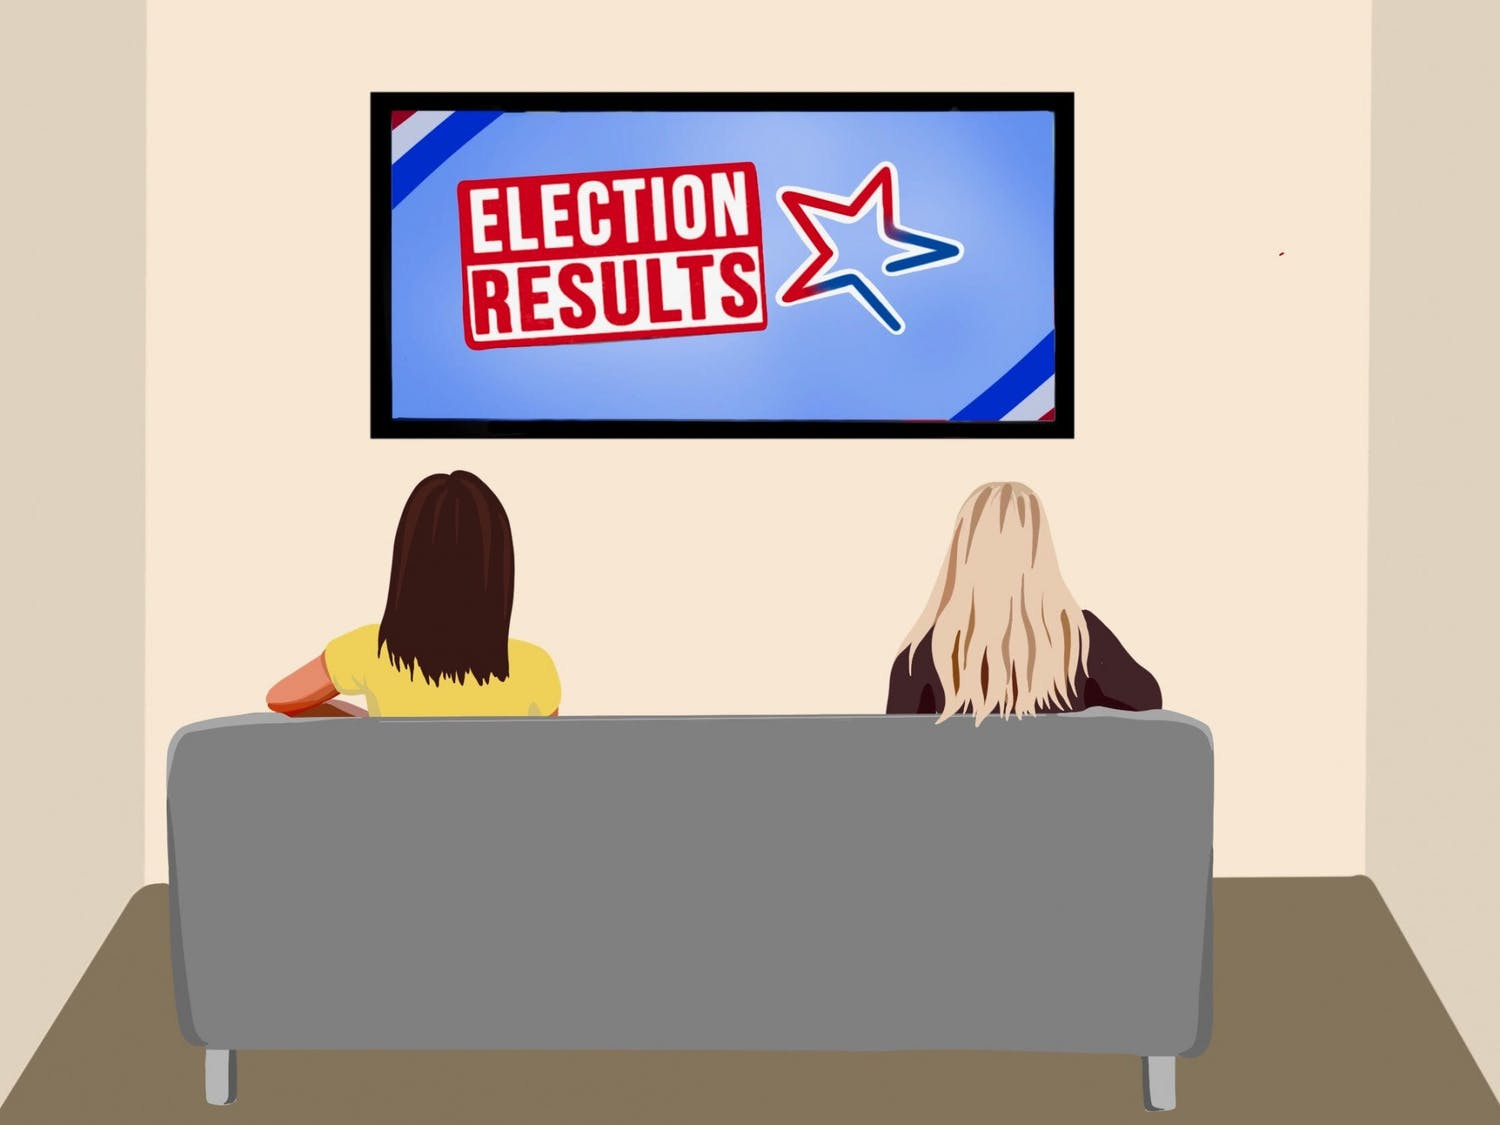 Election_results.jpg